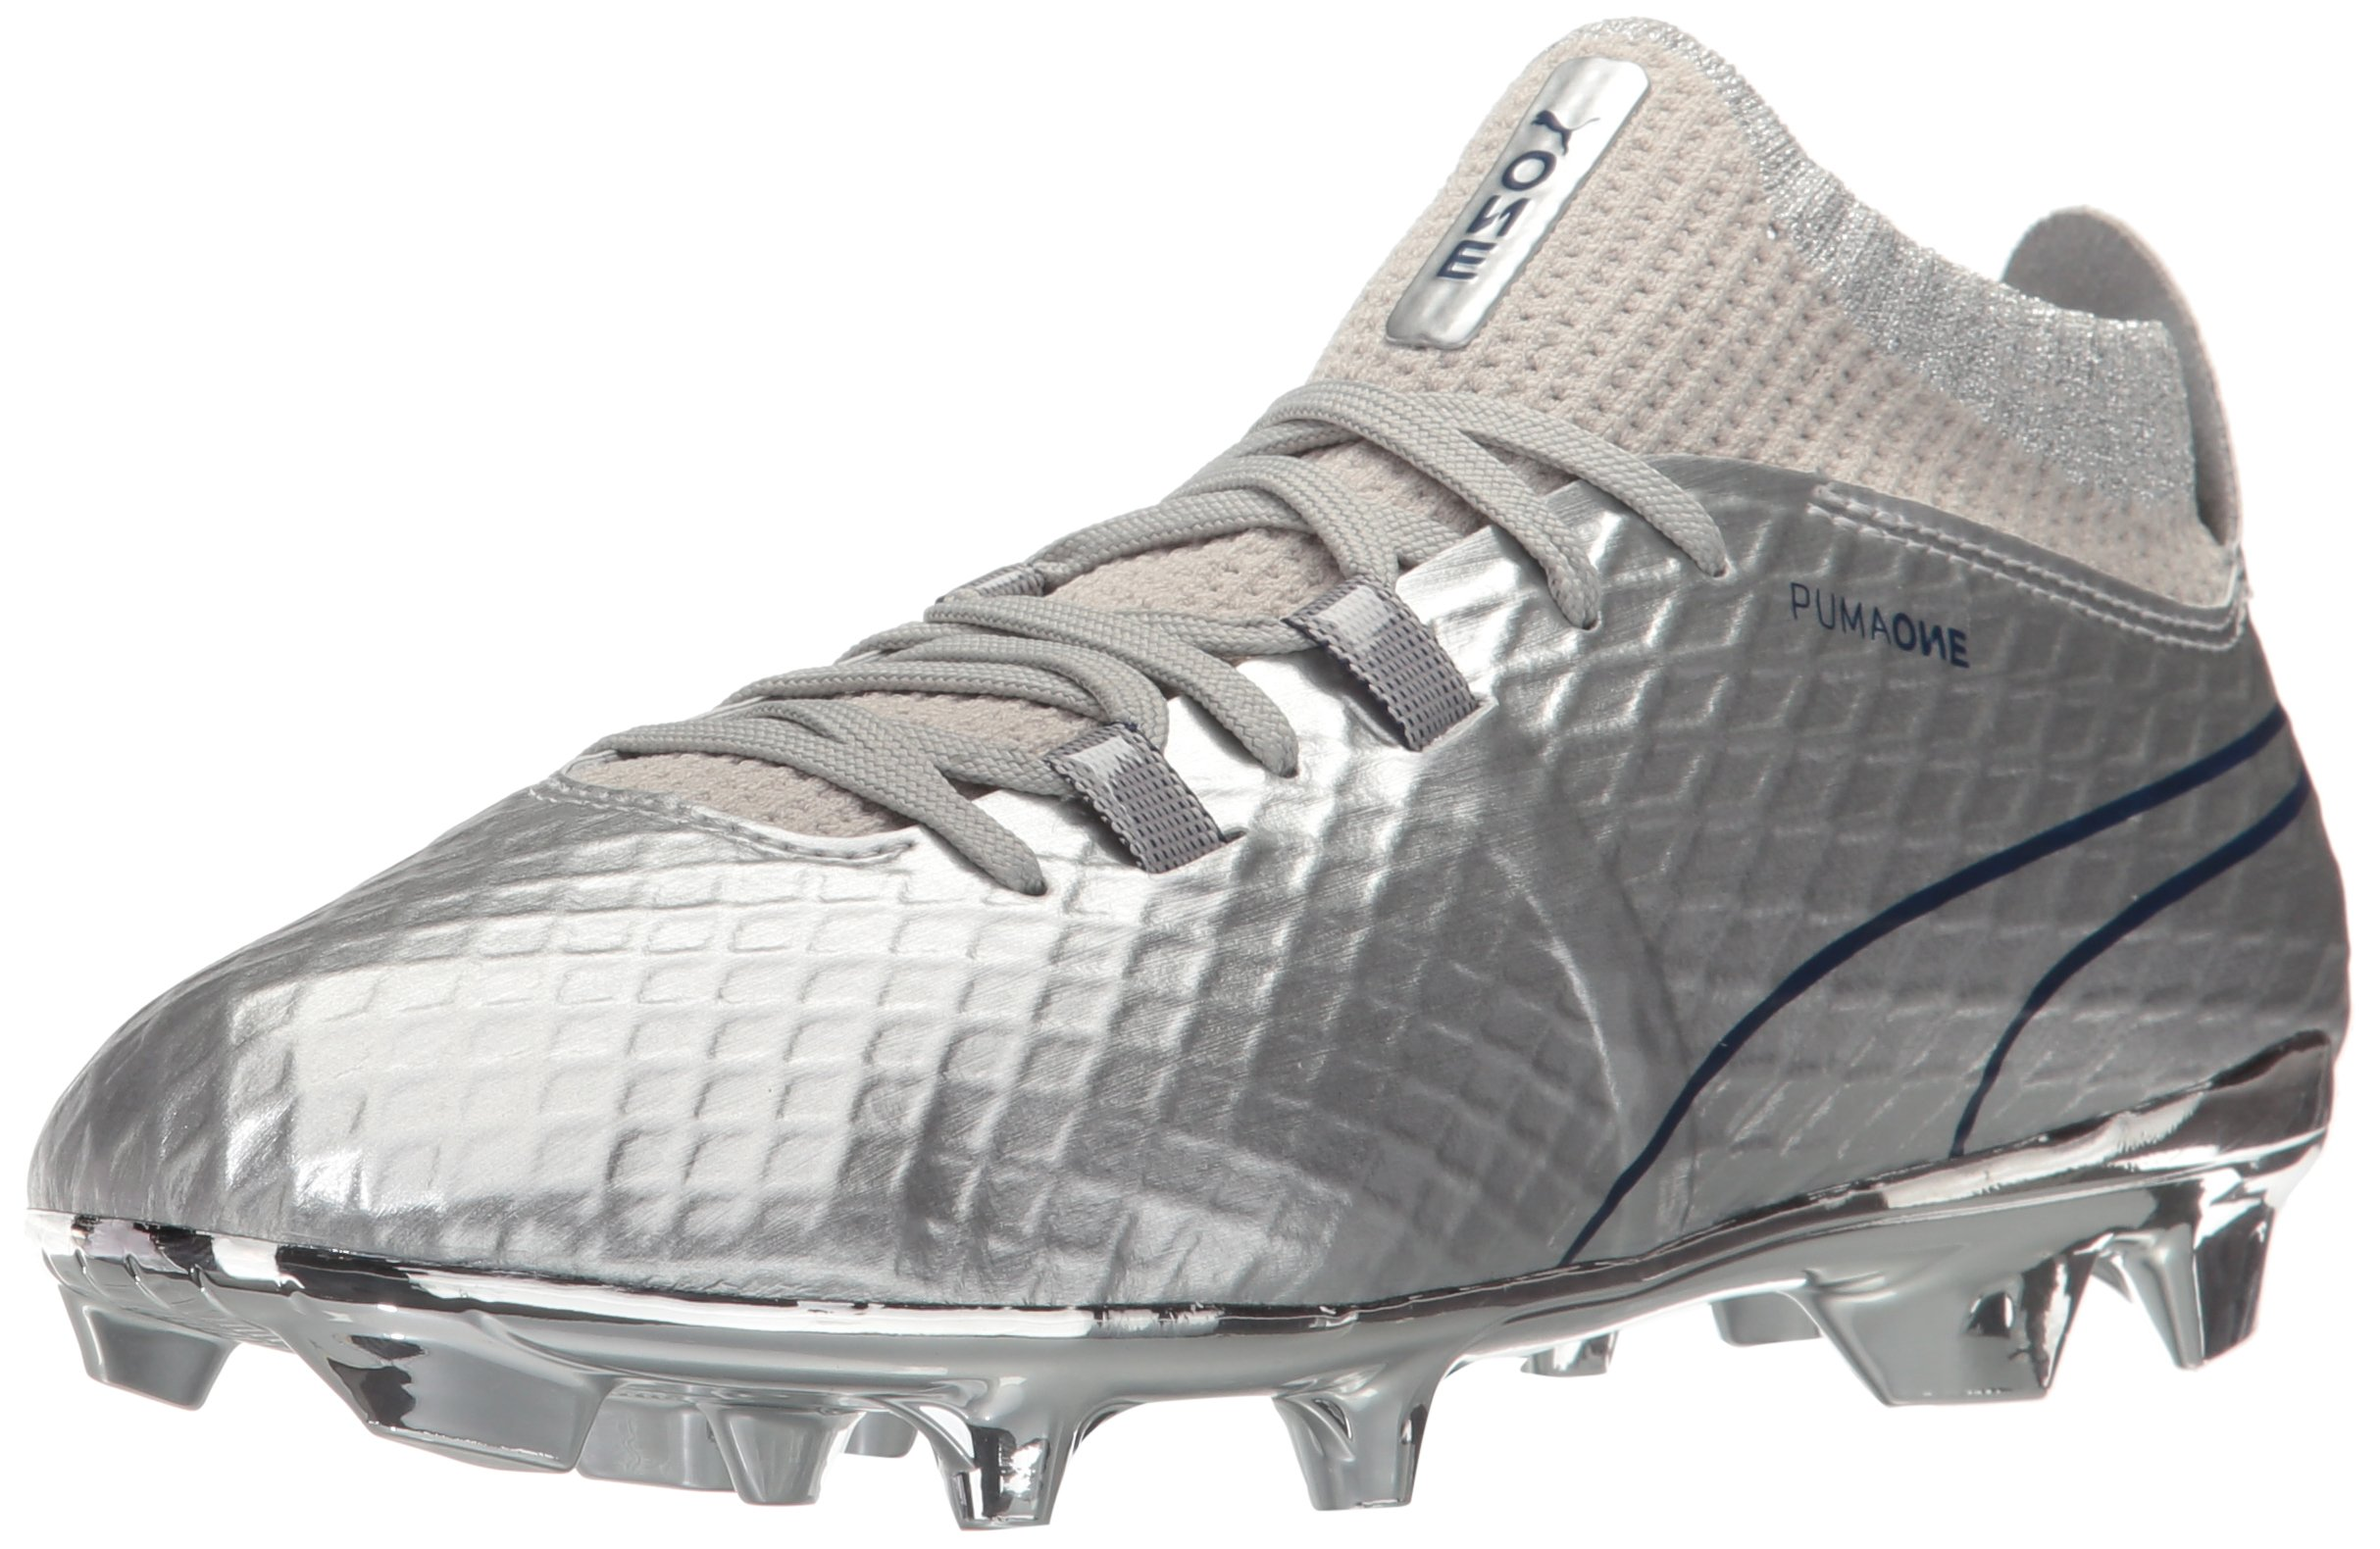 PUMA Unisex-Kids One Chrome FG Jr Soccer-Shoes, Silver/Blue Depths, 3 M US Little Kid by PUMA